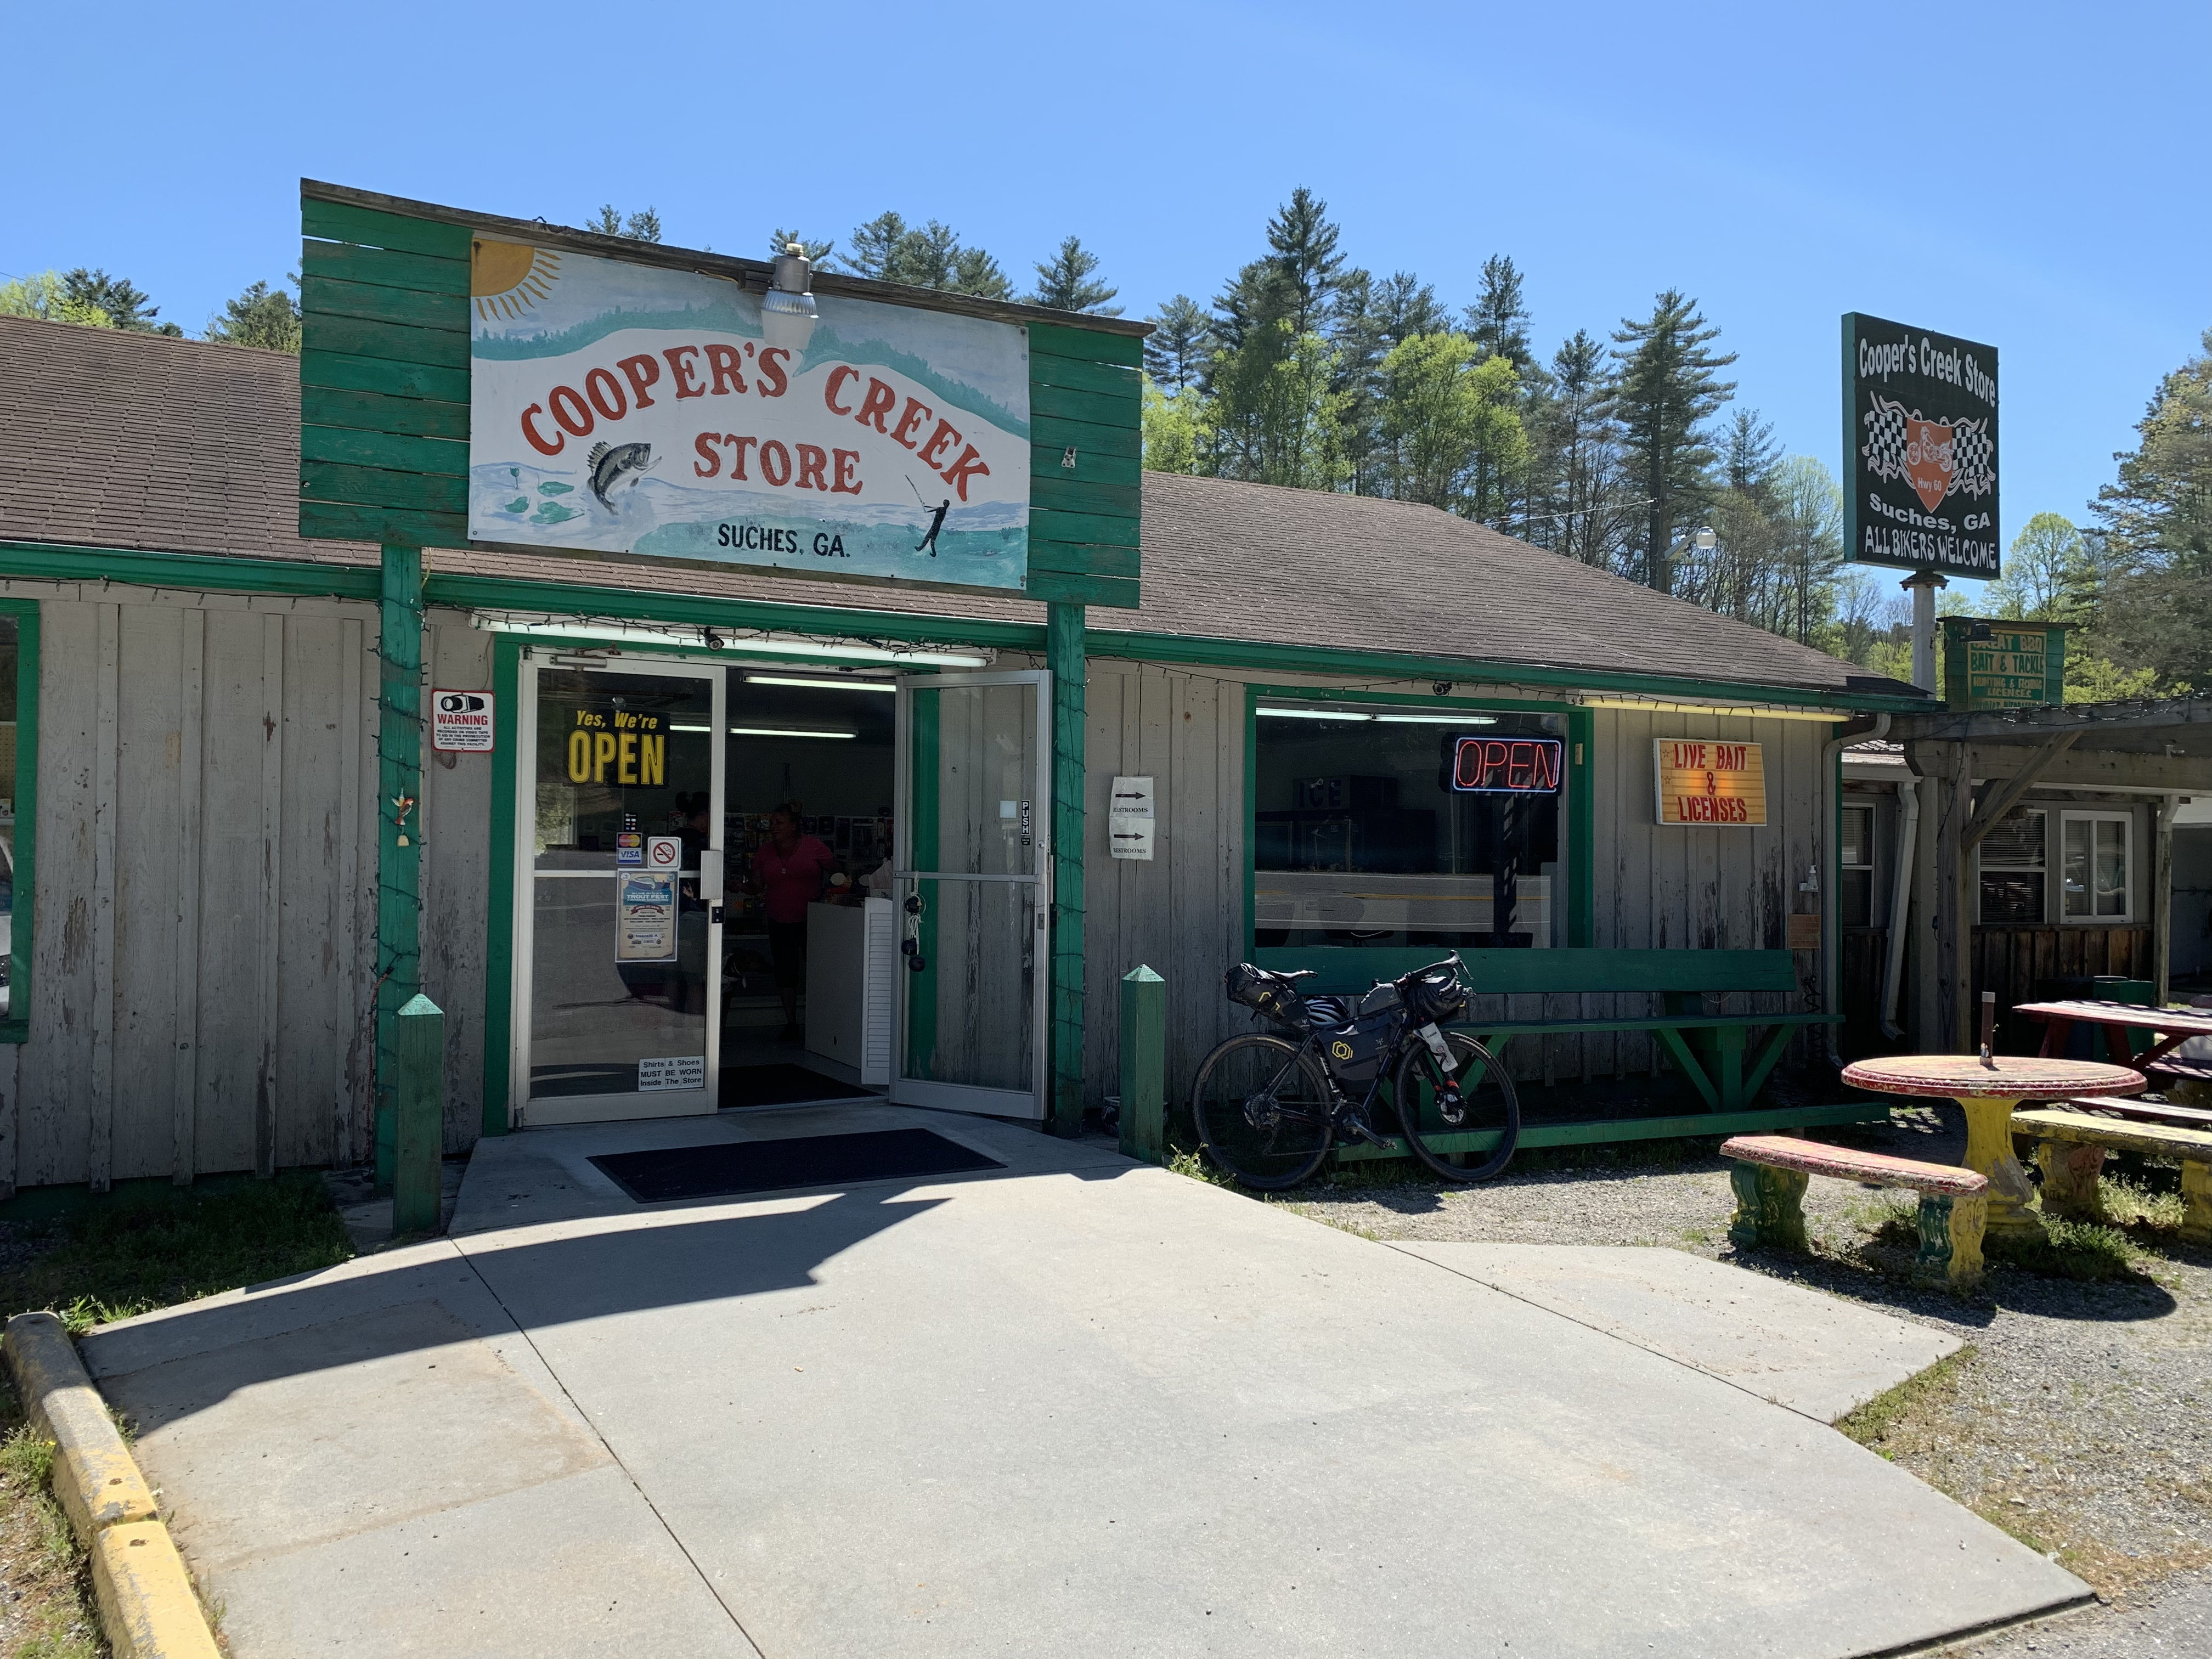 Coopers Creek Store